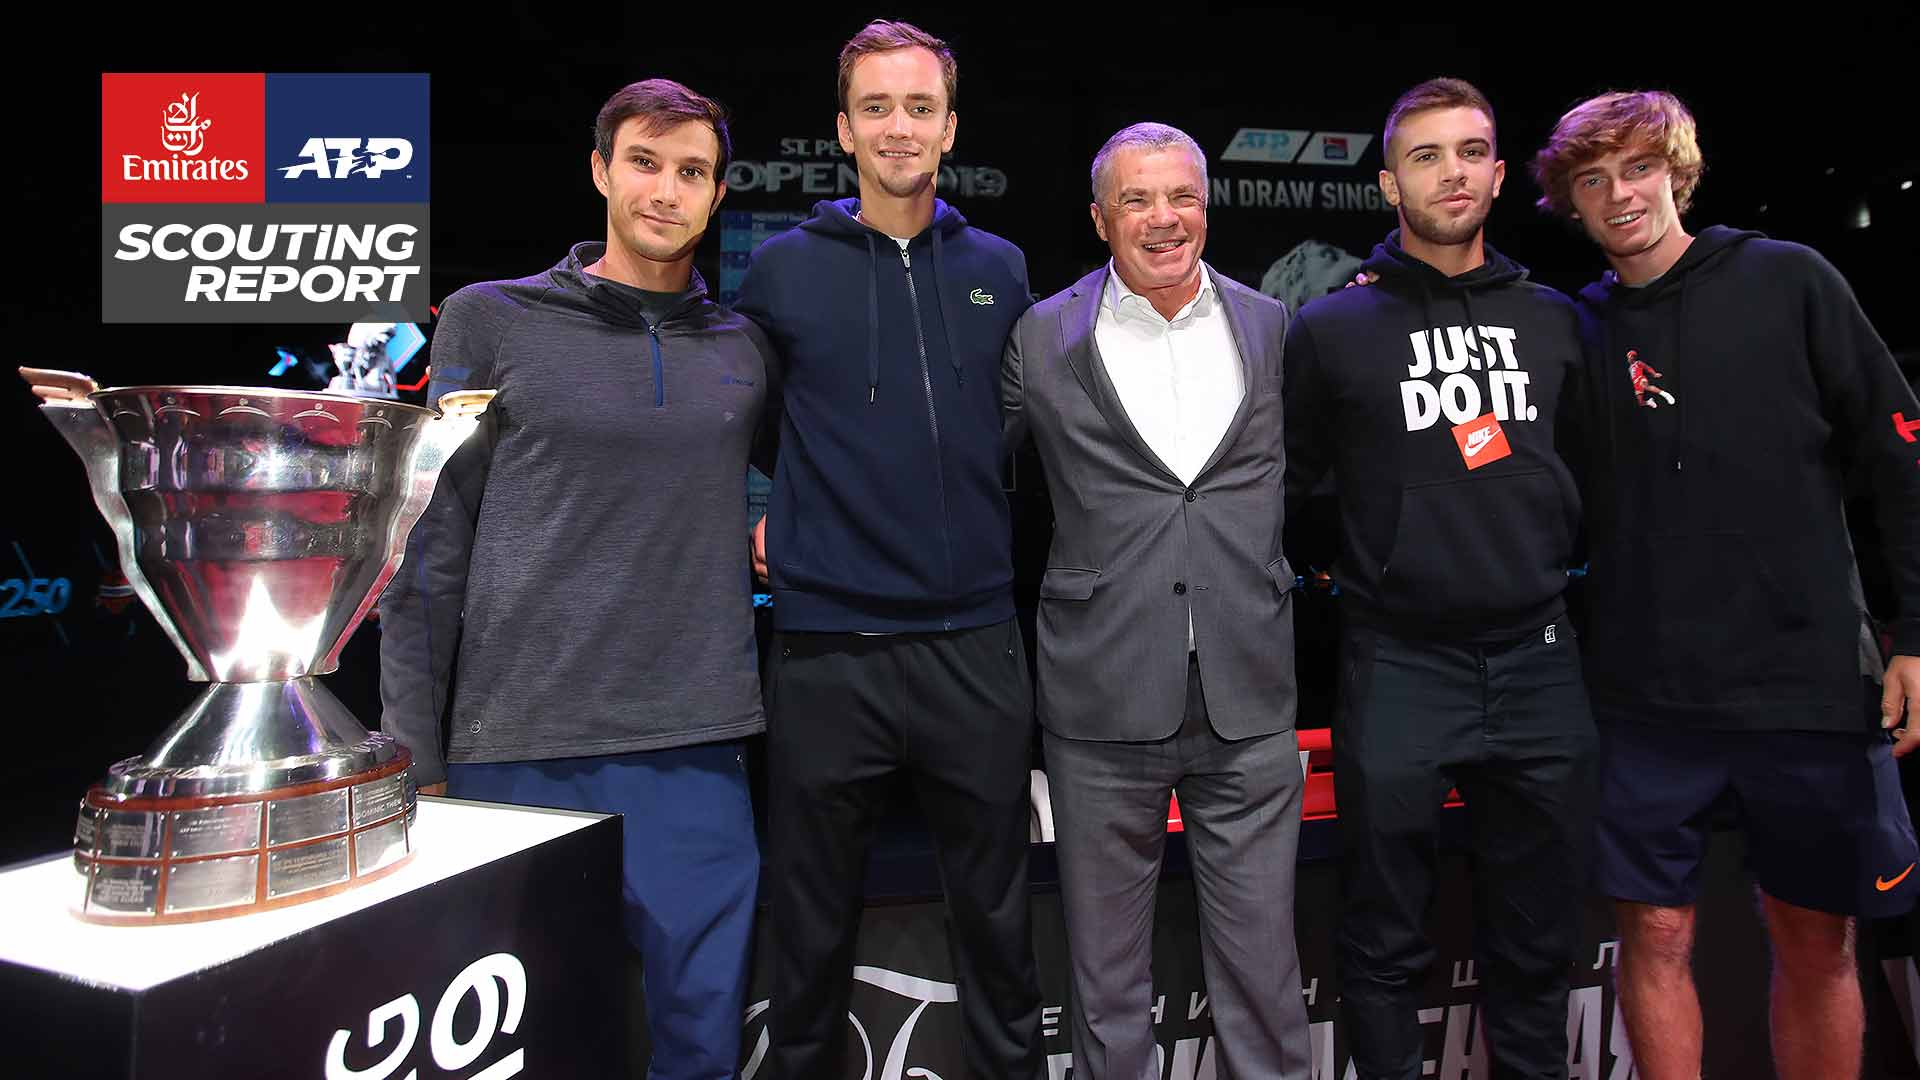 Evgeny Donskoy, Daniil Medvedev, Borna Coric and Andrey Rublev all feature in the St. Petersburg Open draw.